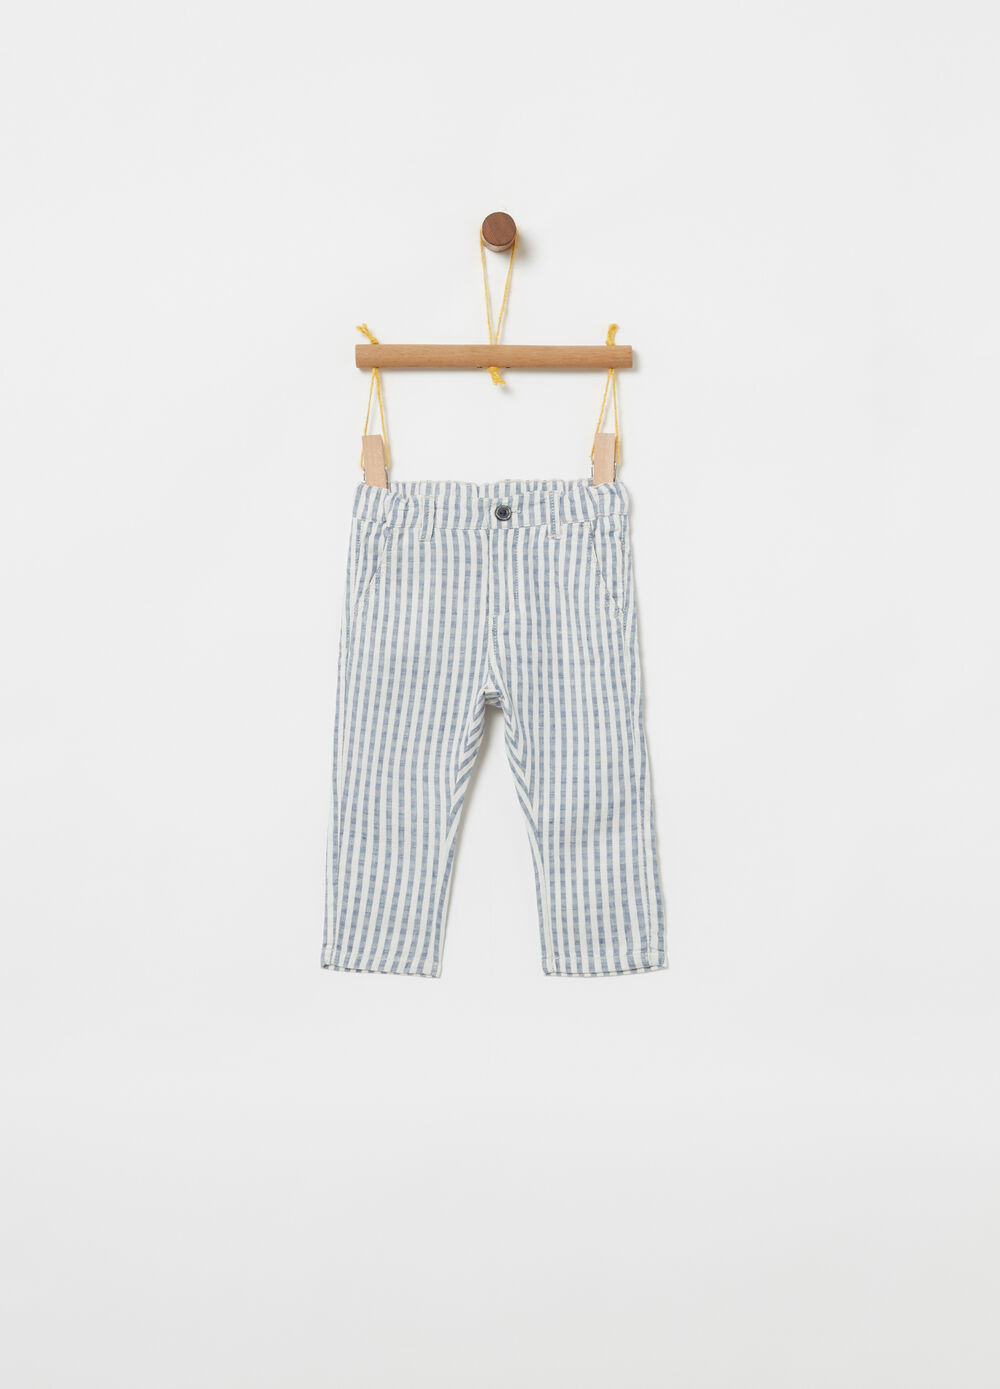 Linen and cotton Bermudas with striped pockets